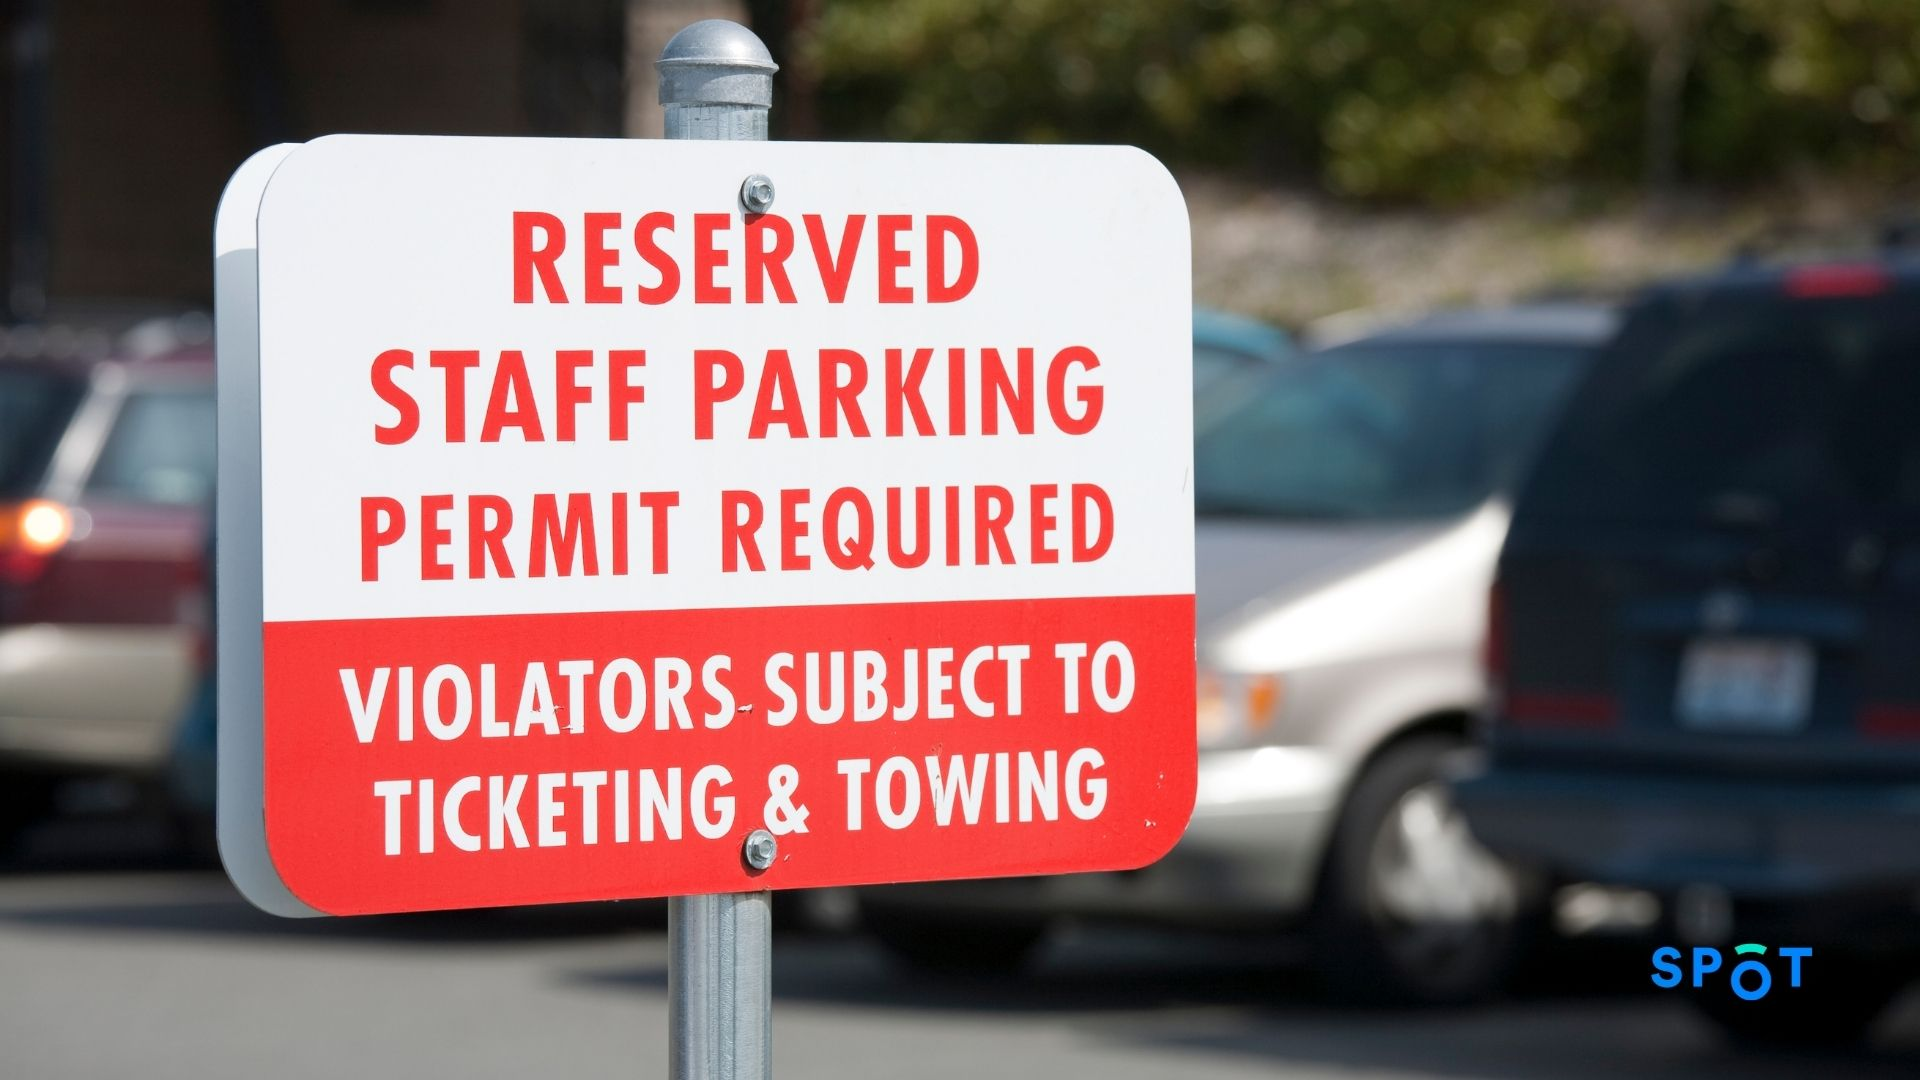 Parking permits are a common source of headaches when it comes to campus parking